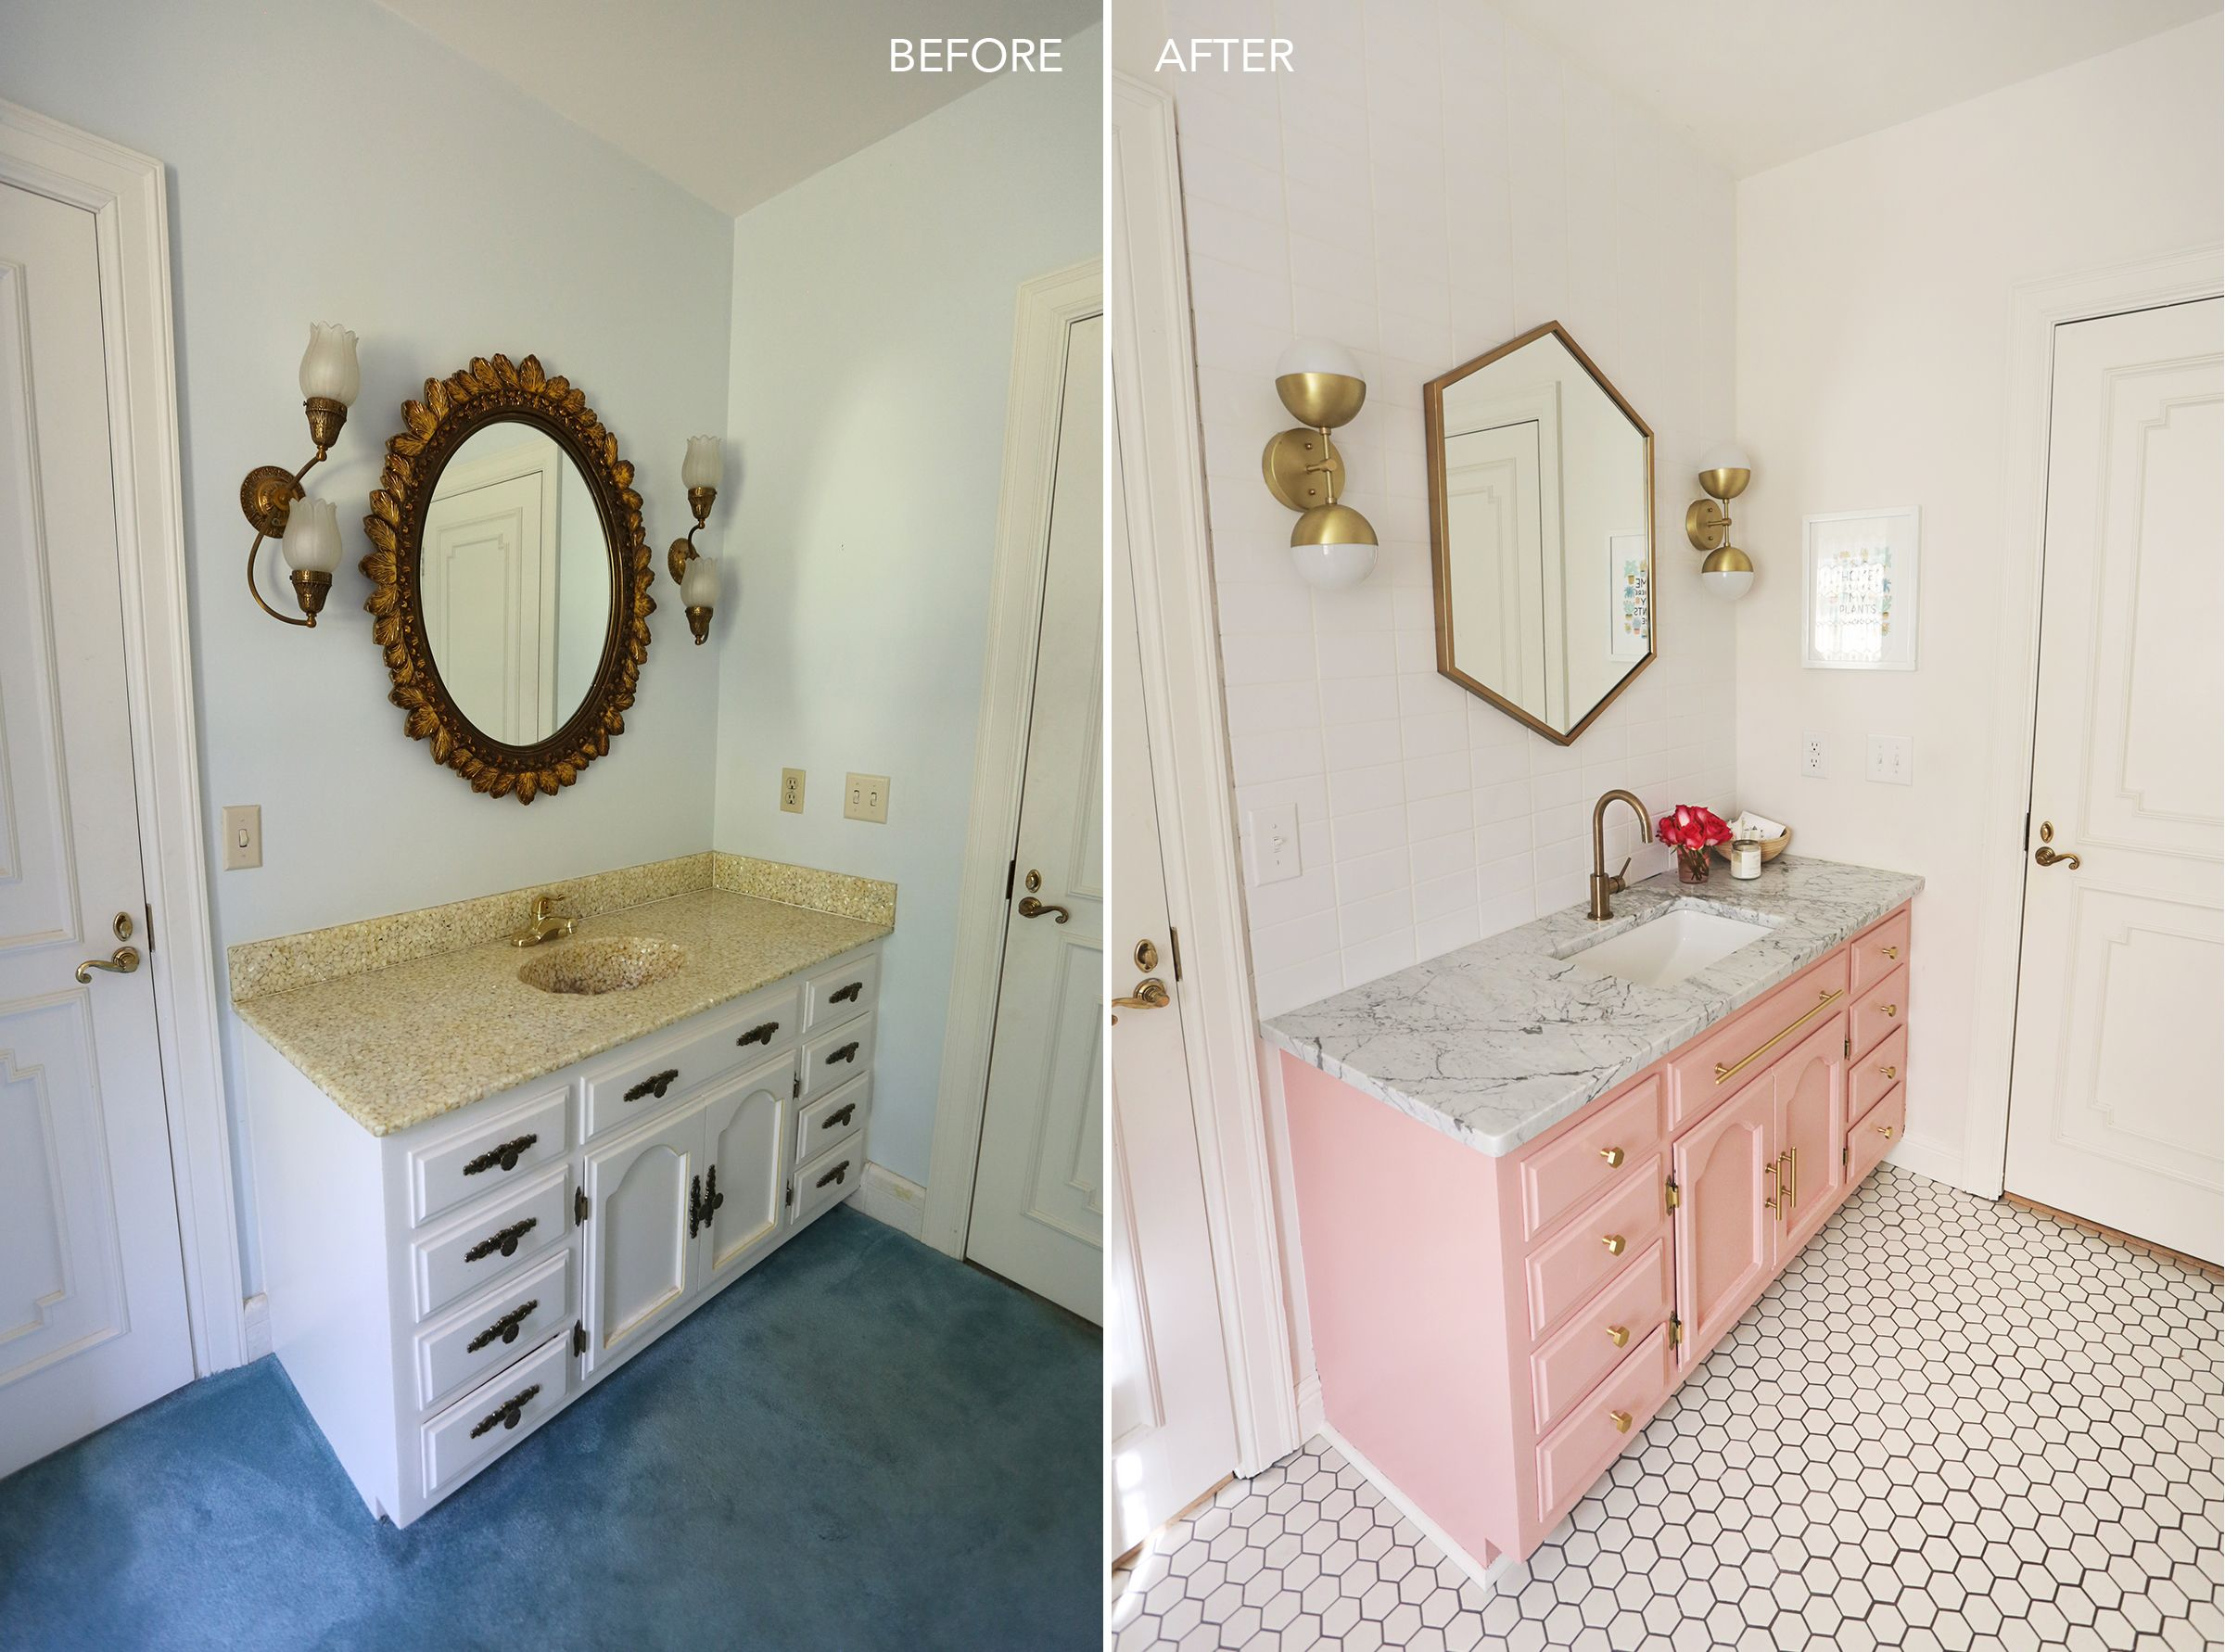 Elsie 39 s guest bathroom tour before after bathrooms - Diy bathroom remodel before and after ...